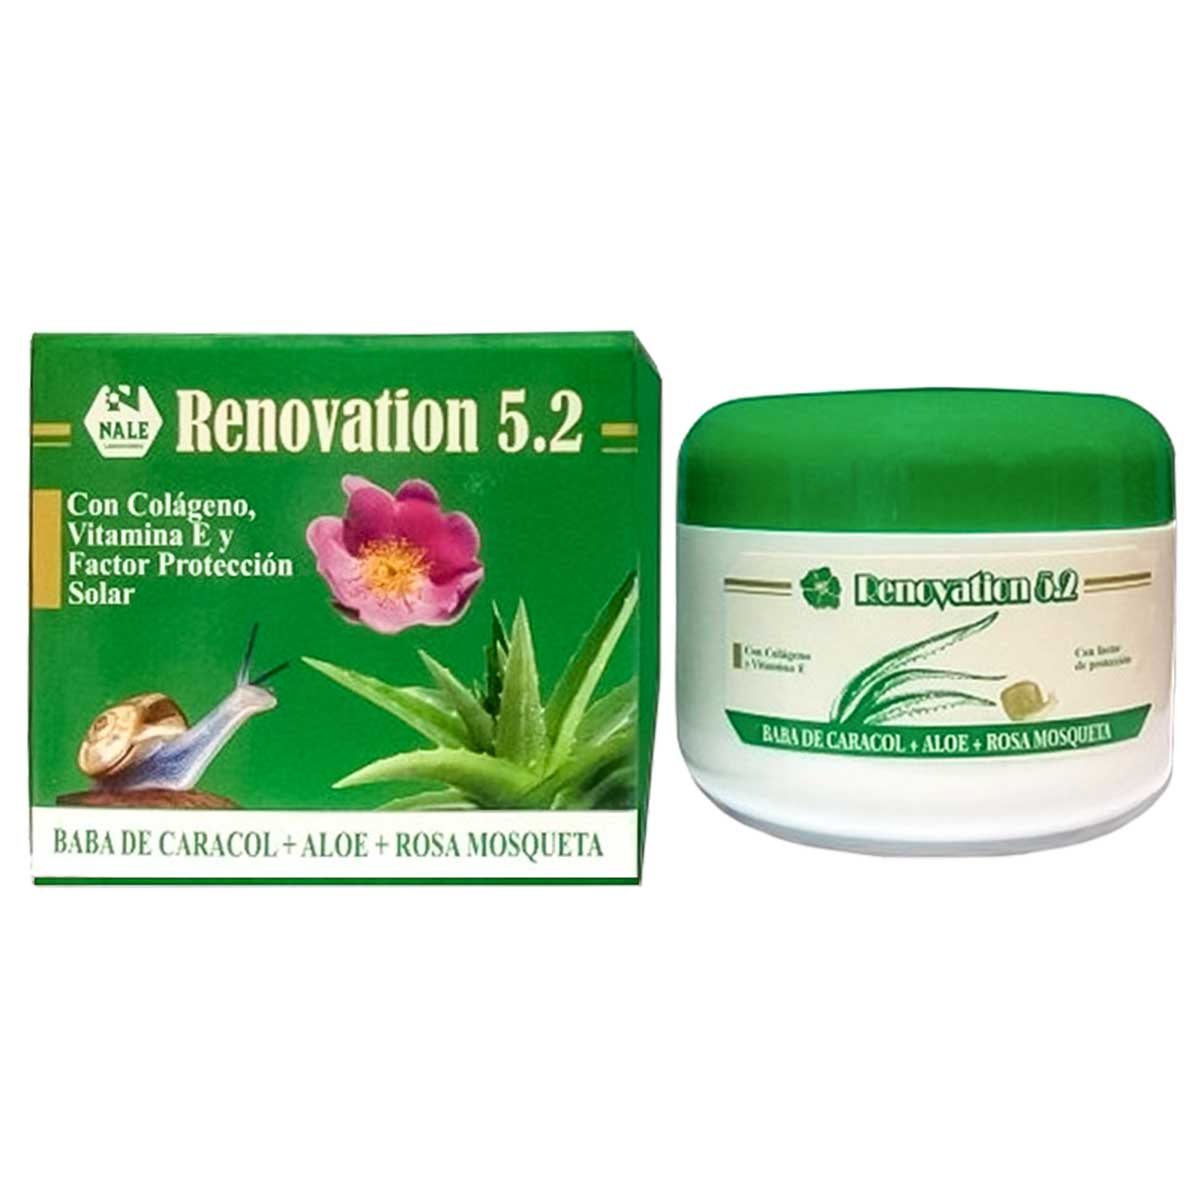 Renovation 5.2 Nale 110 ml